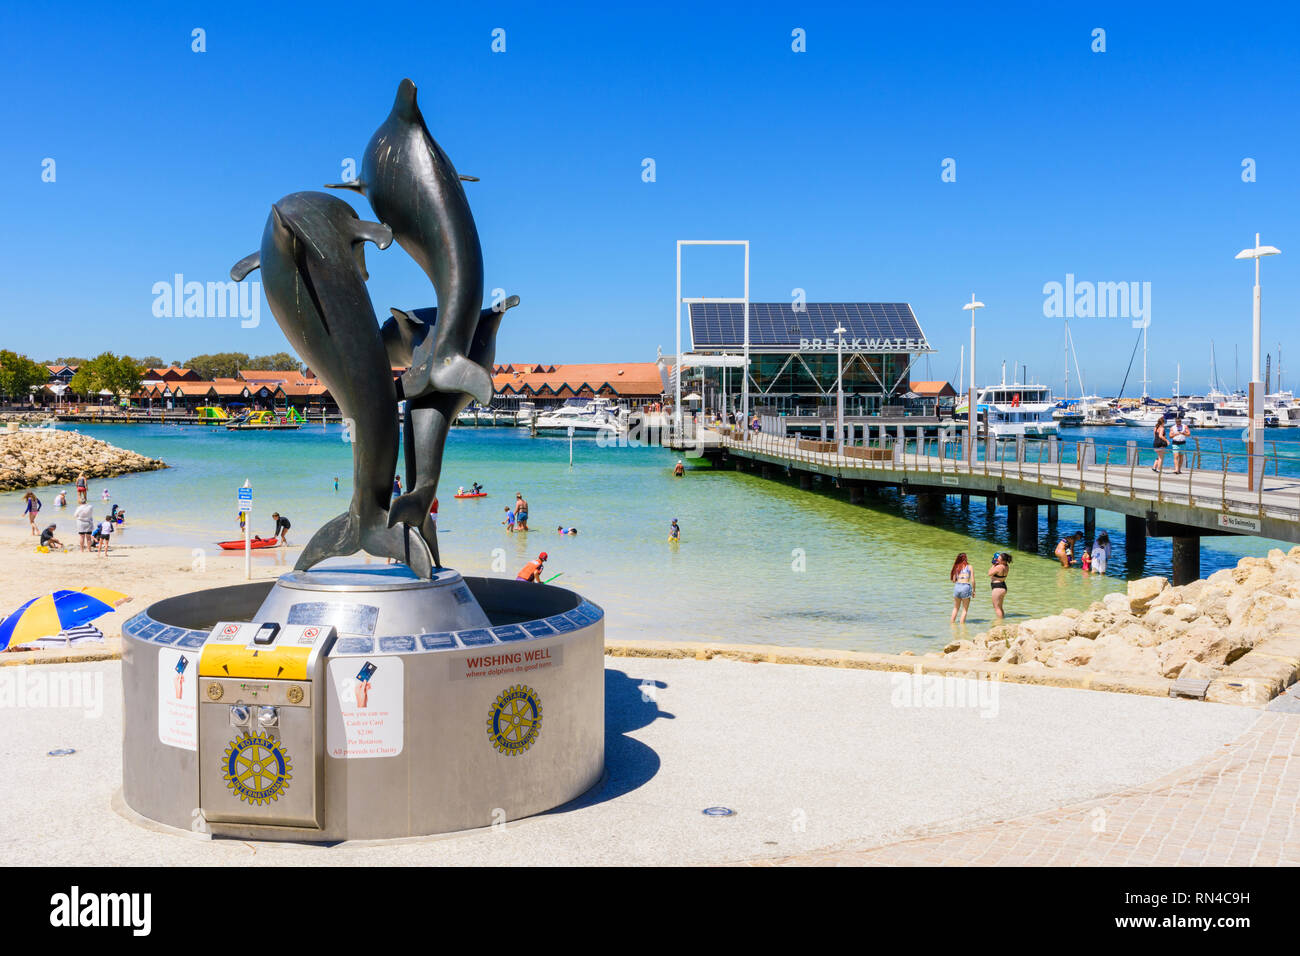 Dolphin wishing well and views over Sorrento Quay at Hillarys Boat Harbour, Hillarys, Western Australia - Stock Image